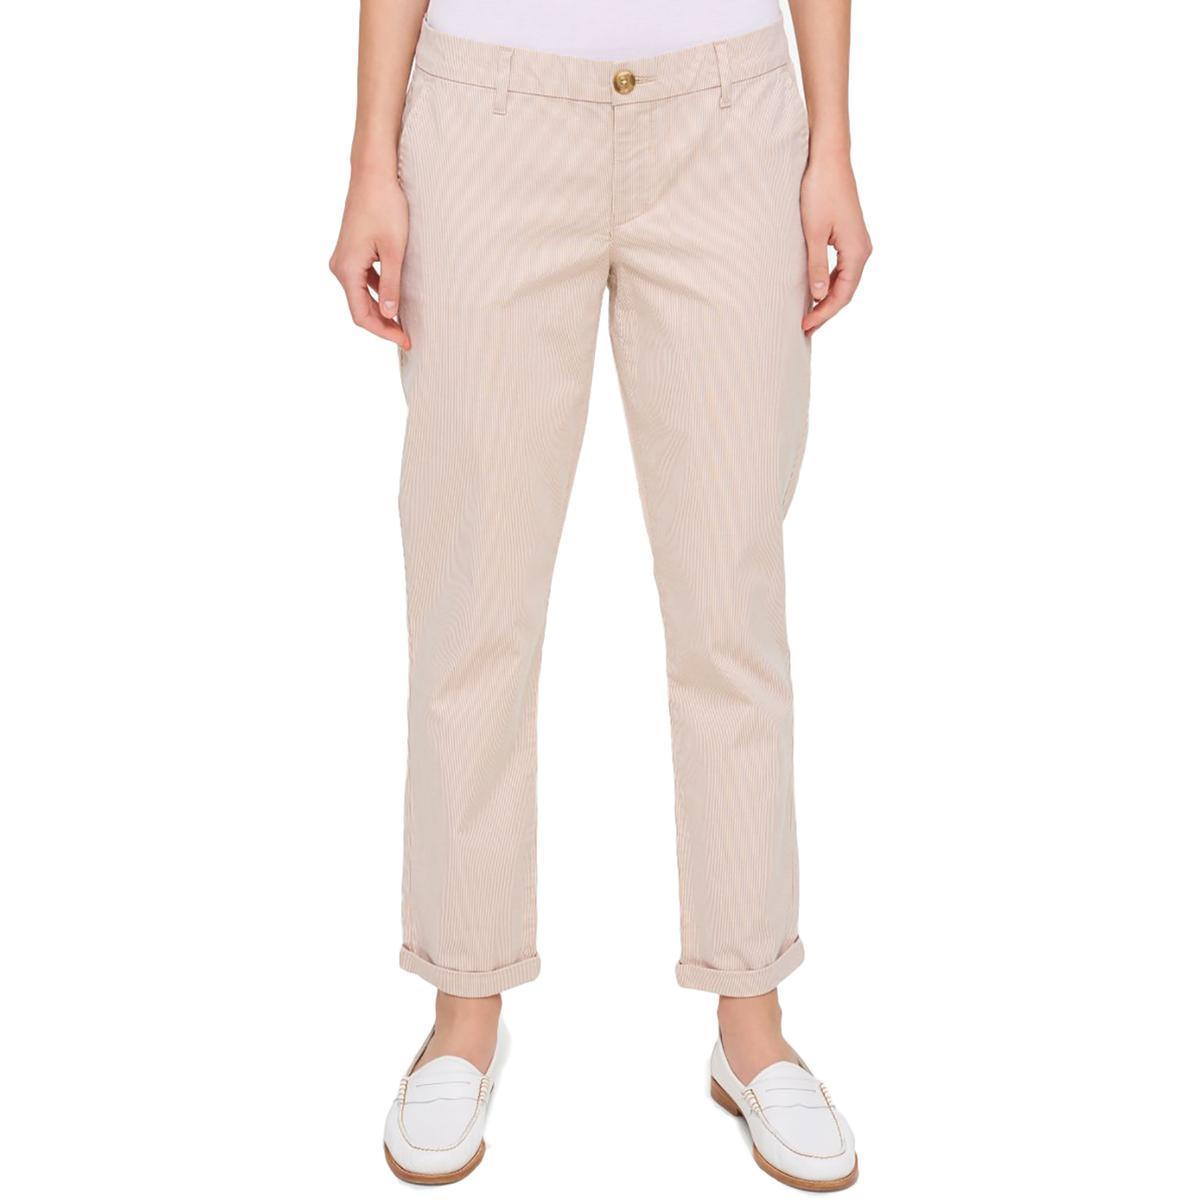 0e398042 Tommy Hilfiger NEW Beige Women's Size 18 Hampton Striped Chino Pants $69  #882